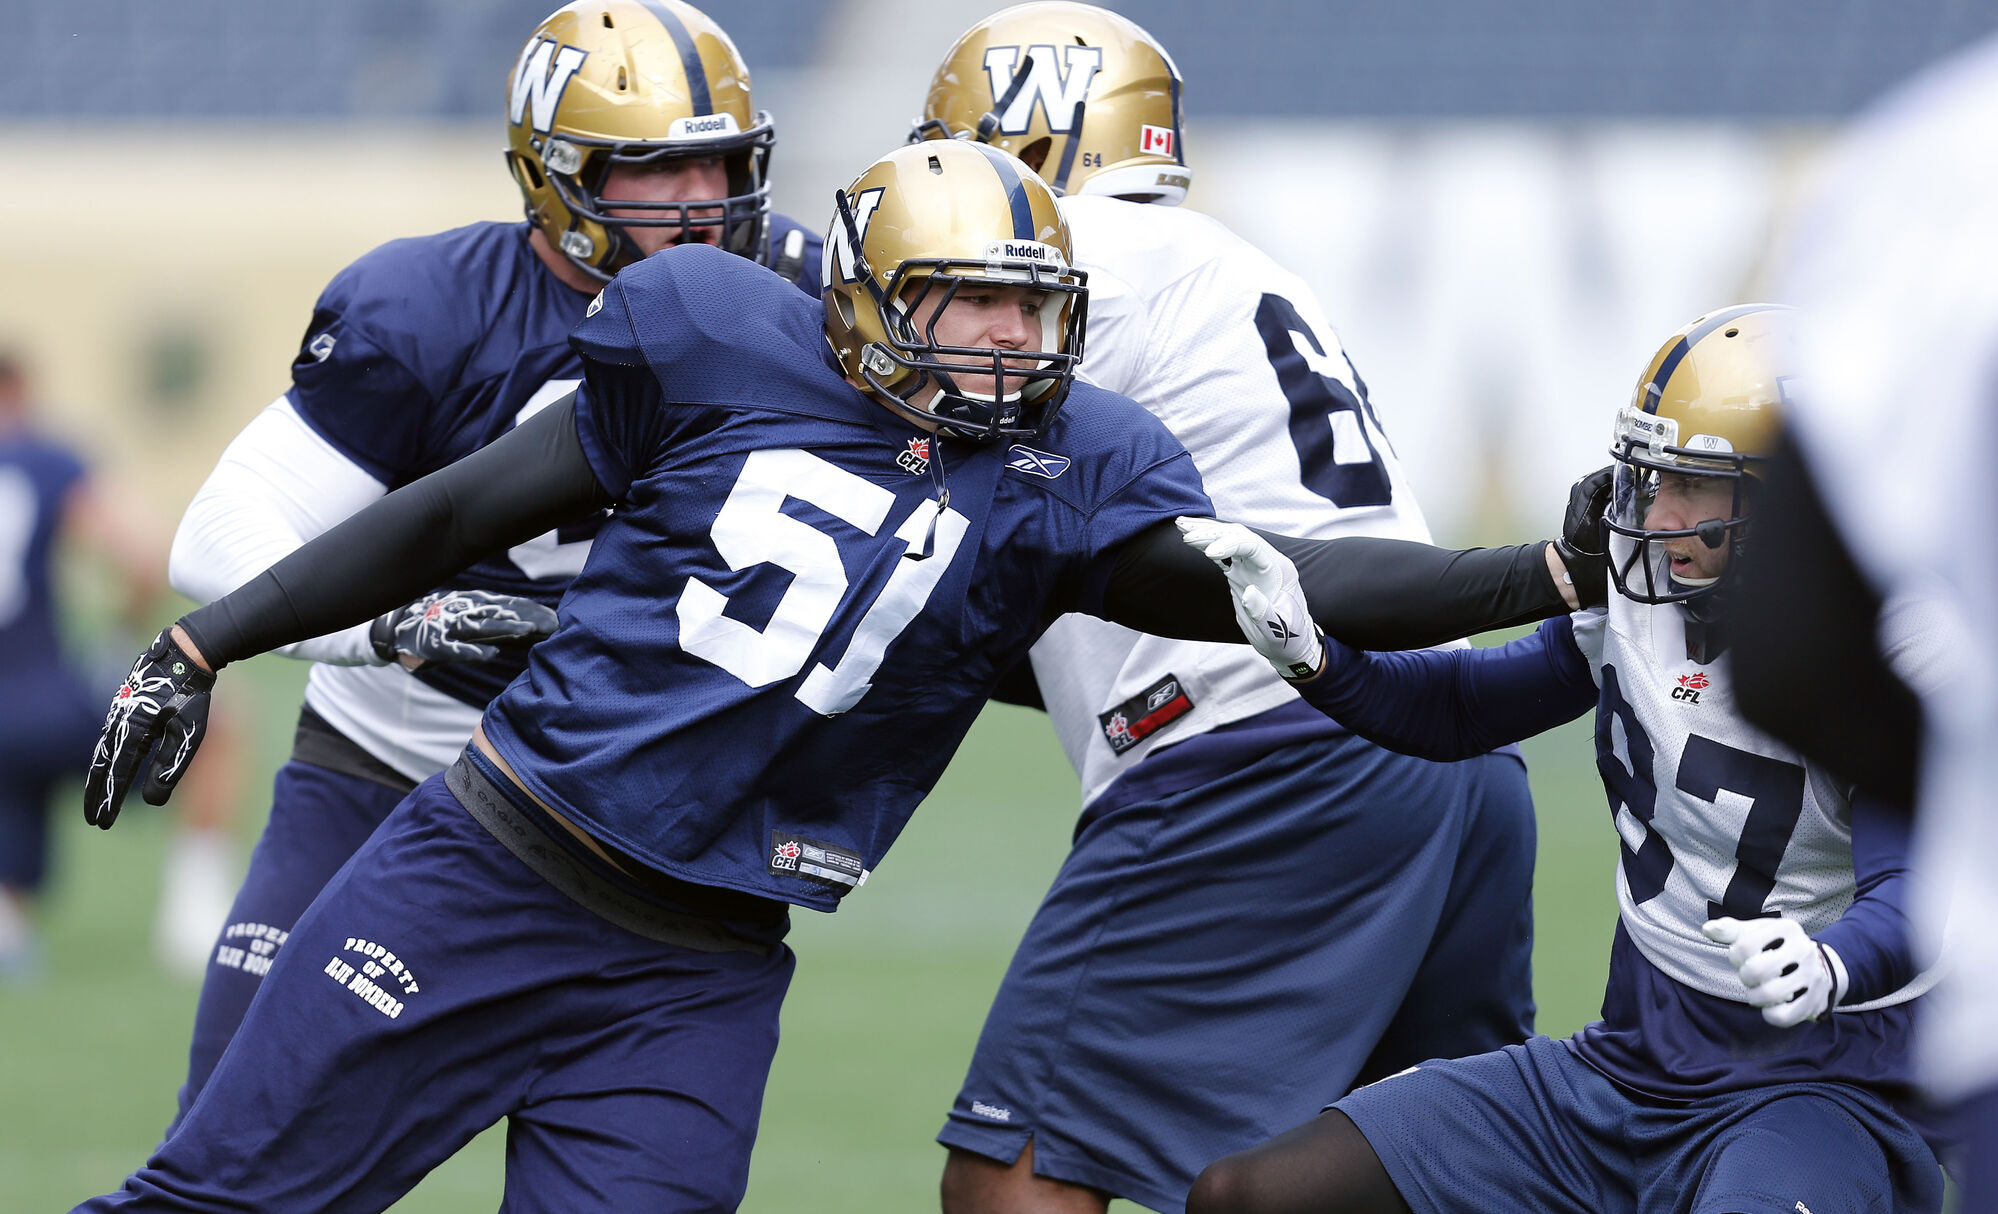 Jake Killeen (51) joined the Bombers at practice today.